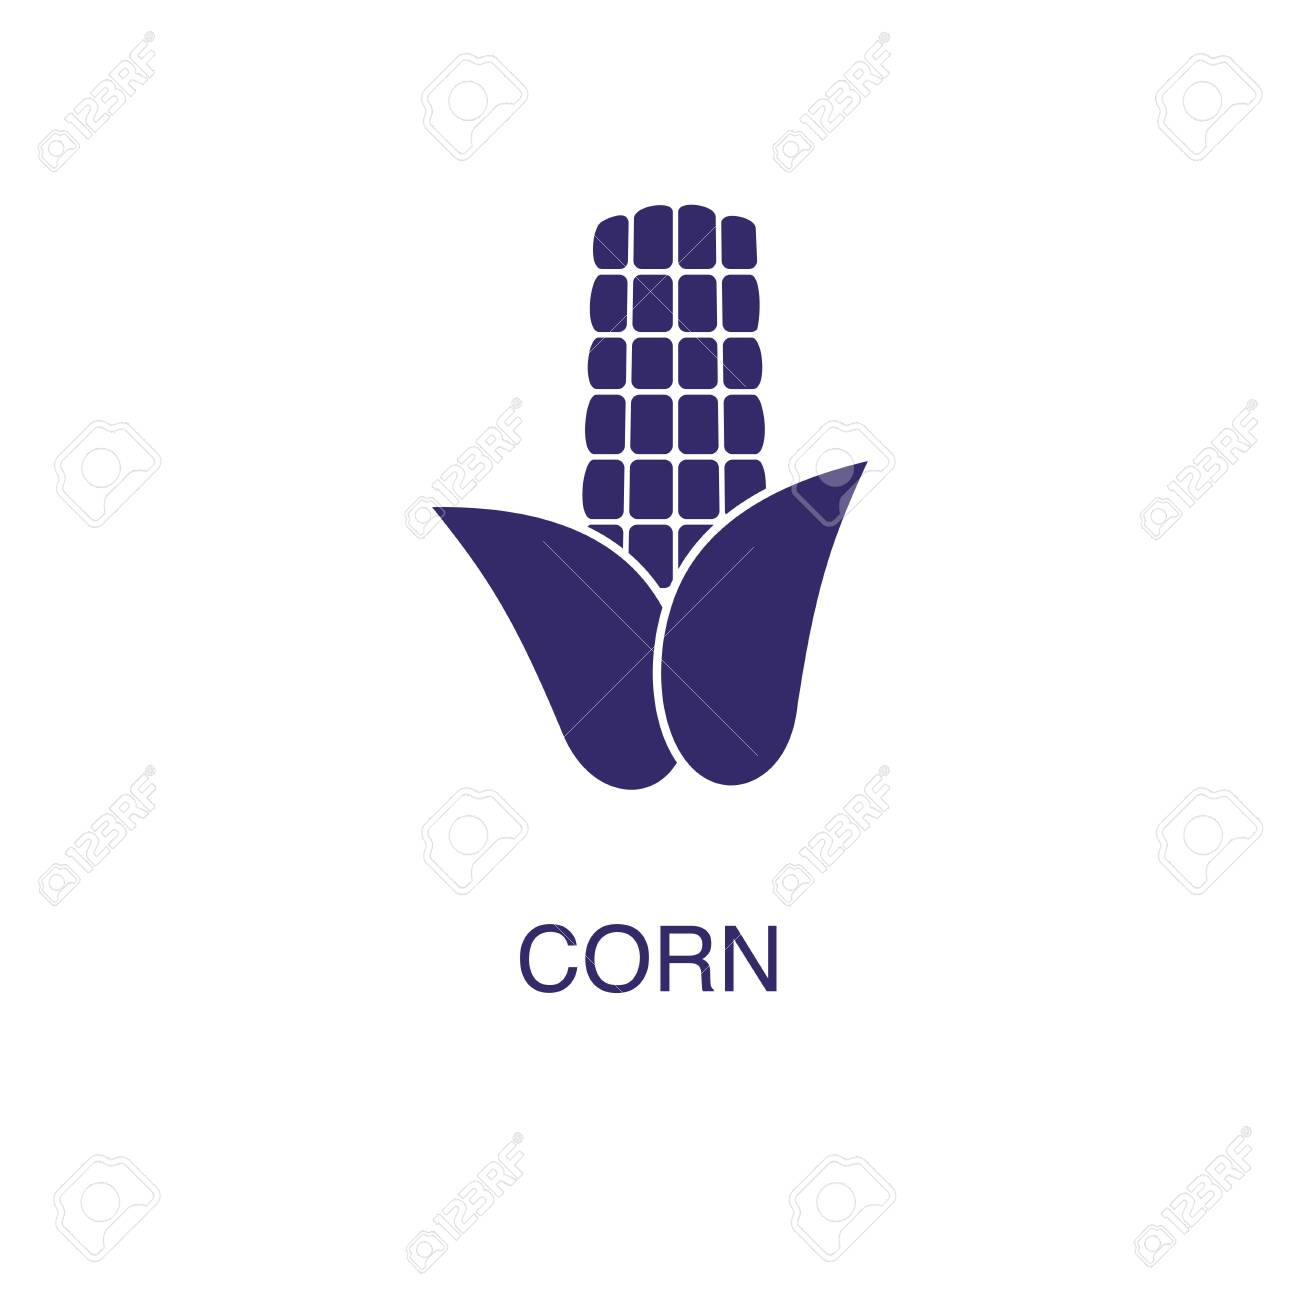 Corn element in flat simple style on white background. Corn icon, with text name concept template - 134450459